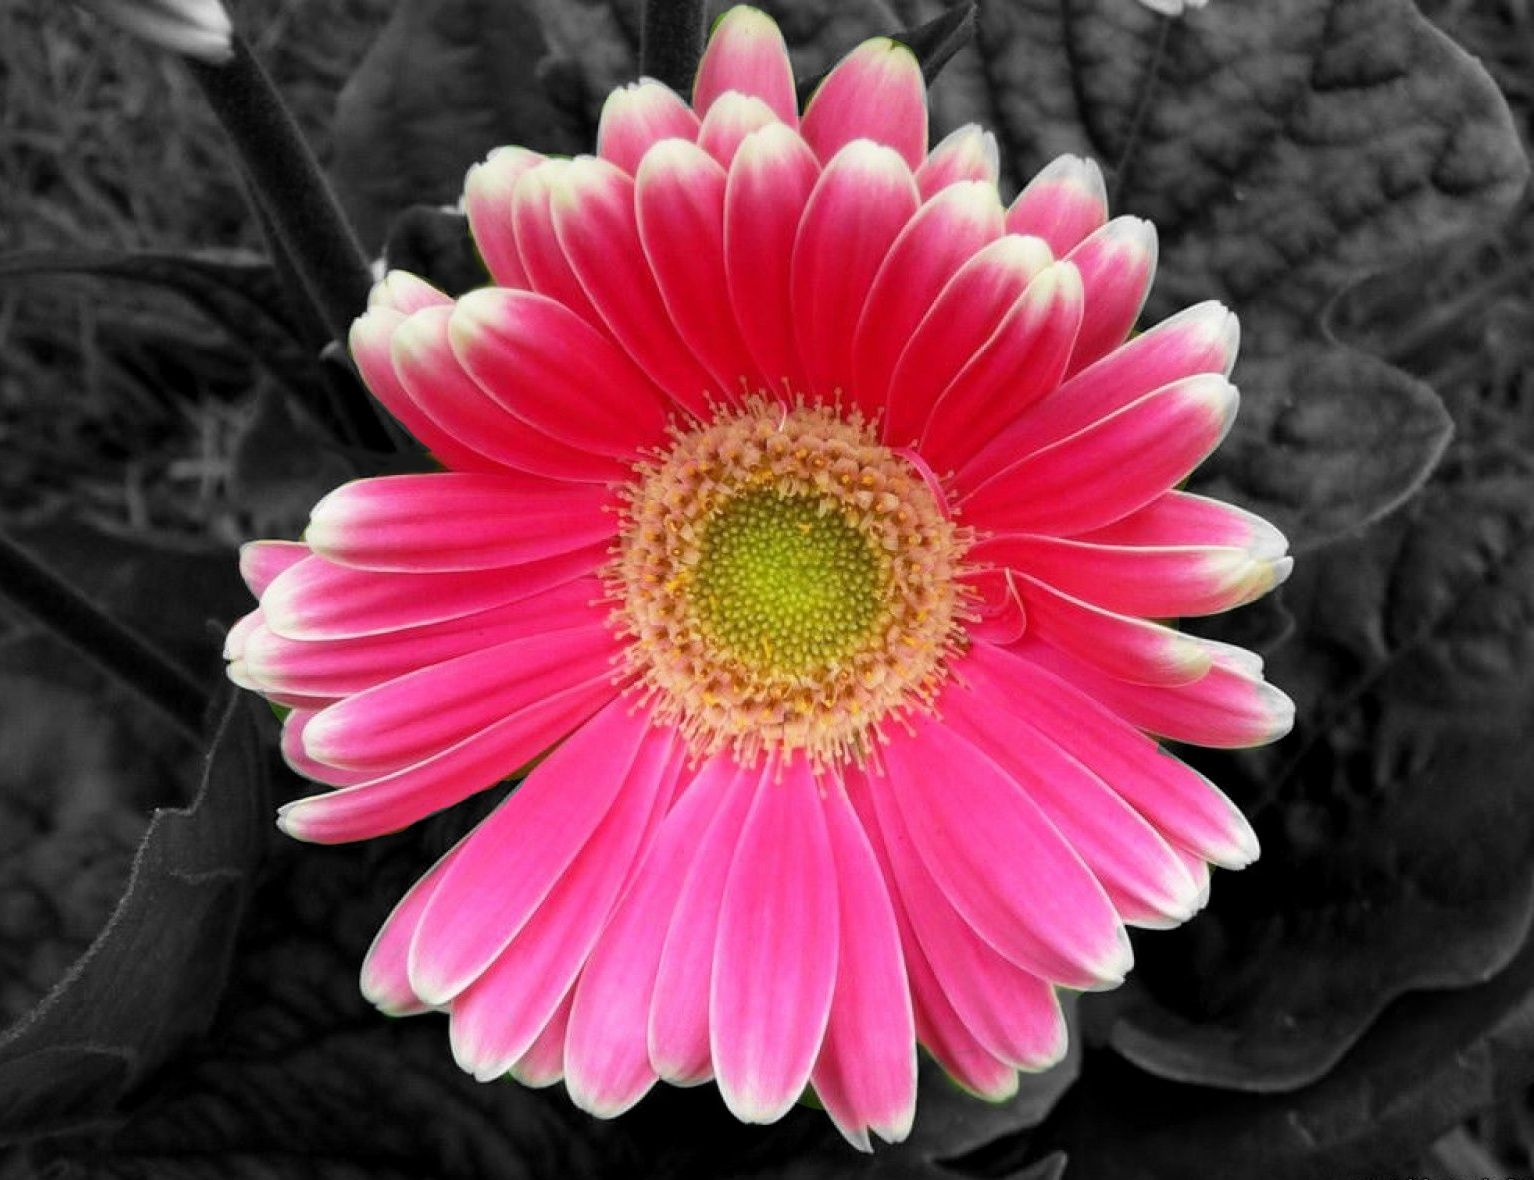 Flower black and white with color picture black white with a flower black and white with color picture dhlflorist Choice Image